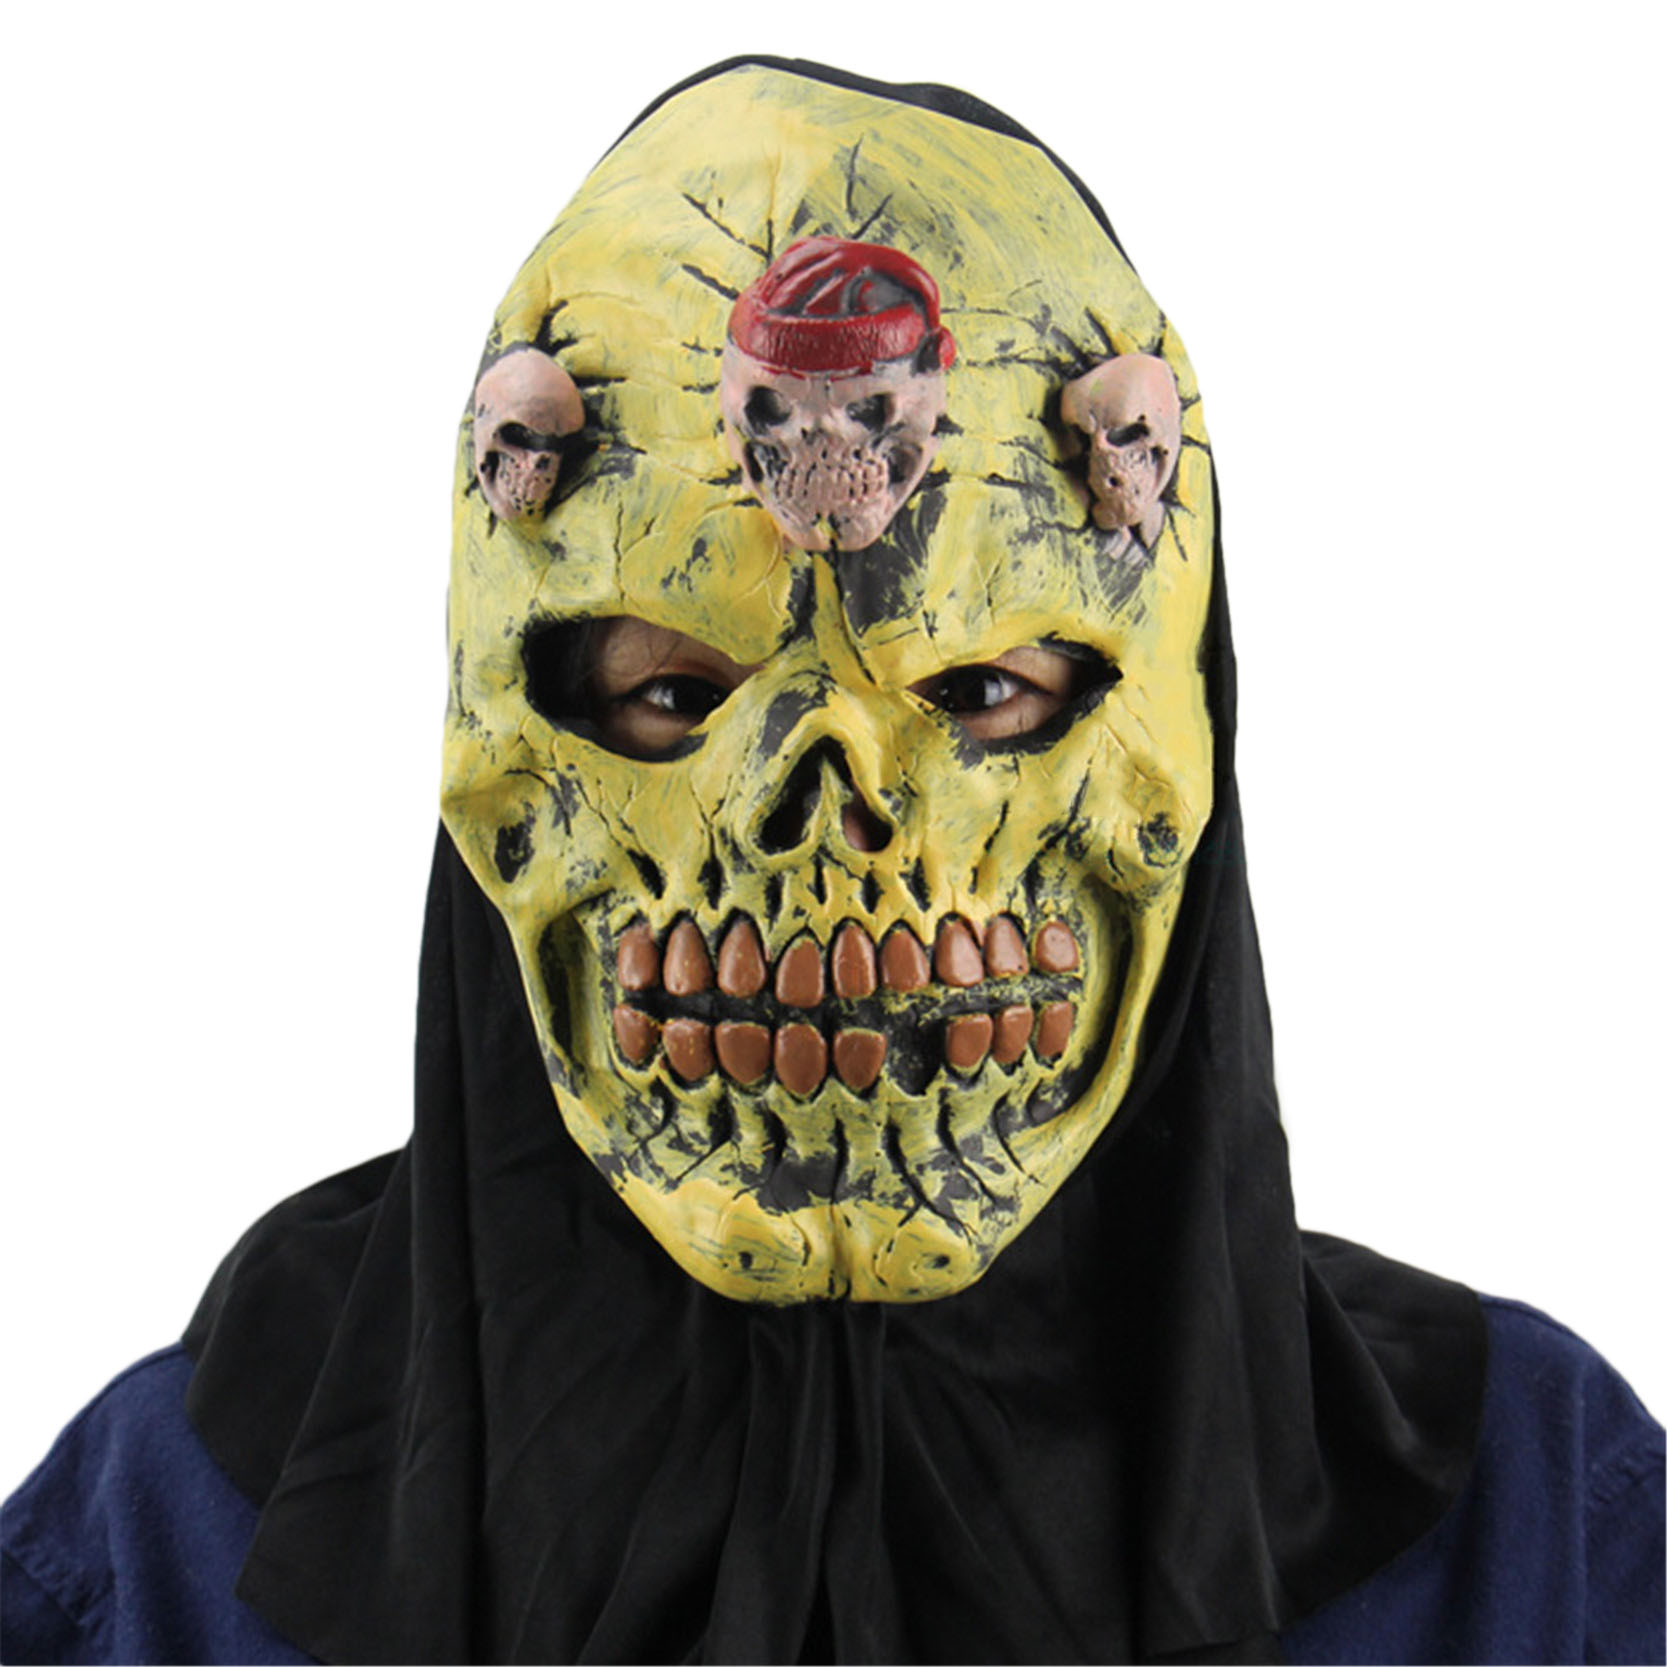 Compare Prices on Masks Skull- Online Shopping/Buy Low Price Masks ...